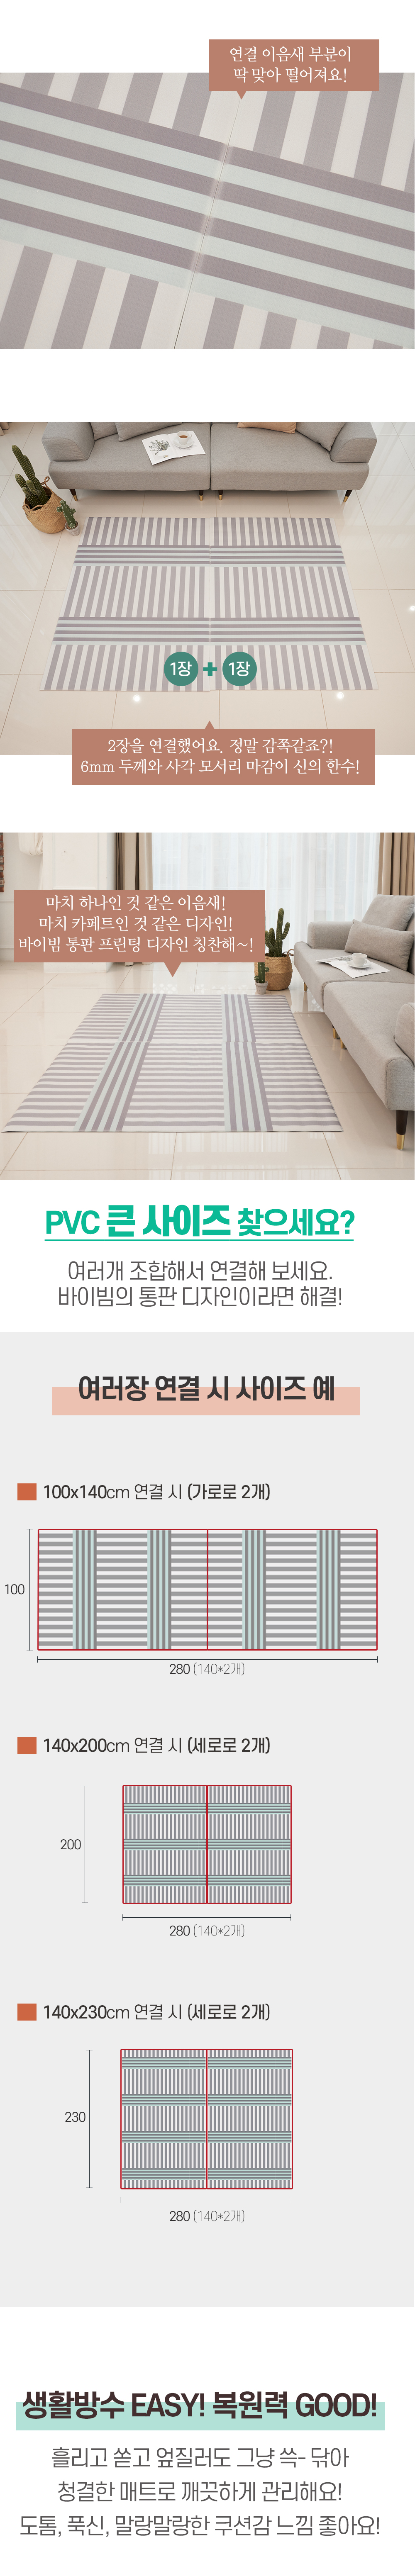 about buybeam PVC mat mare